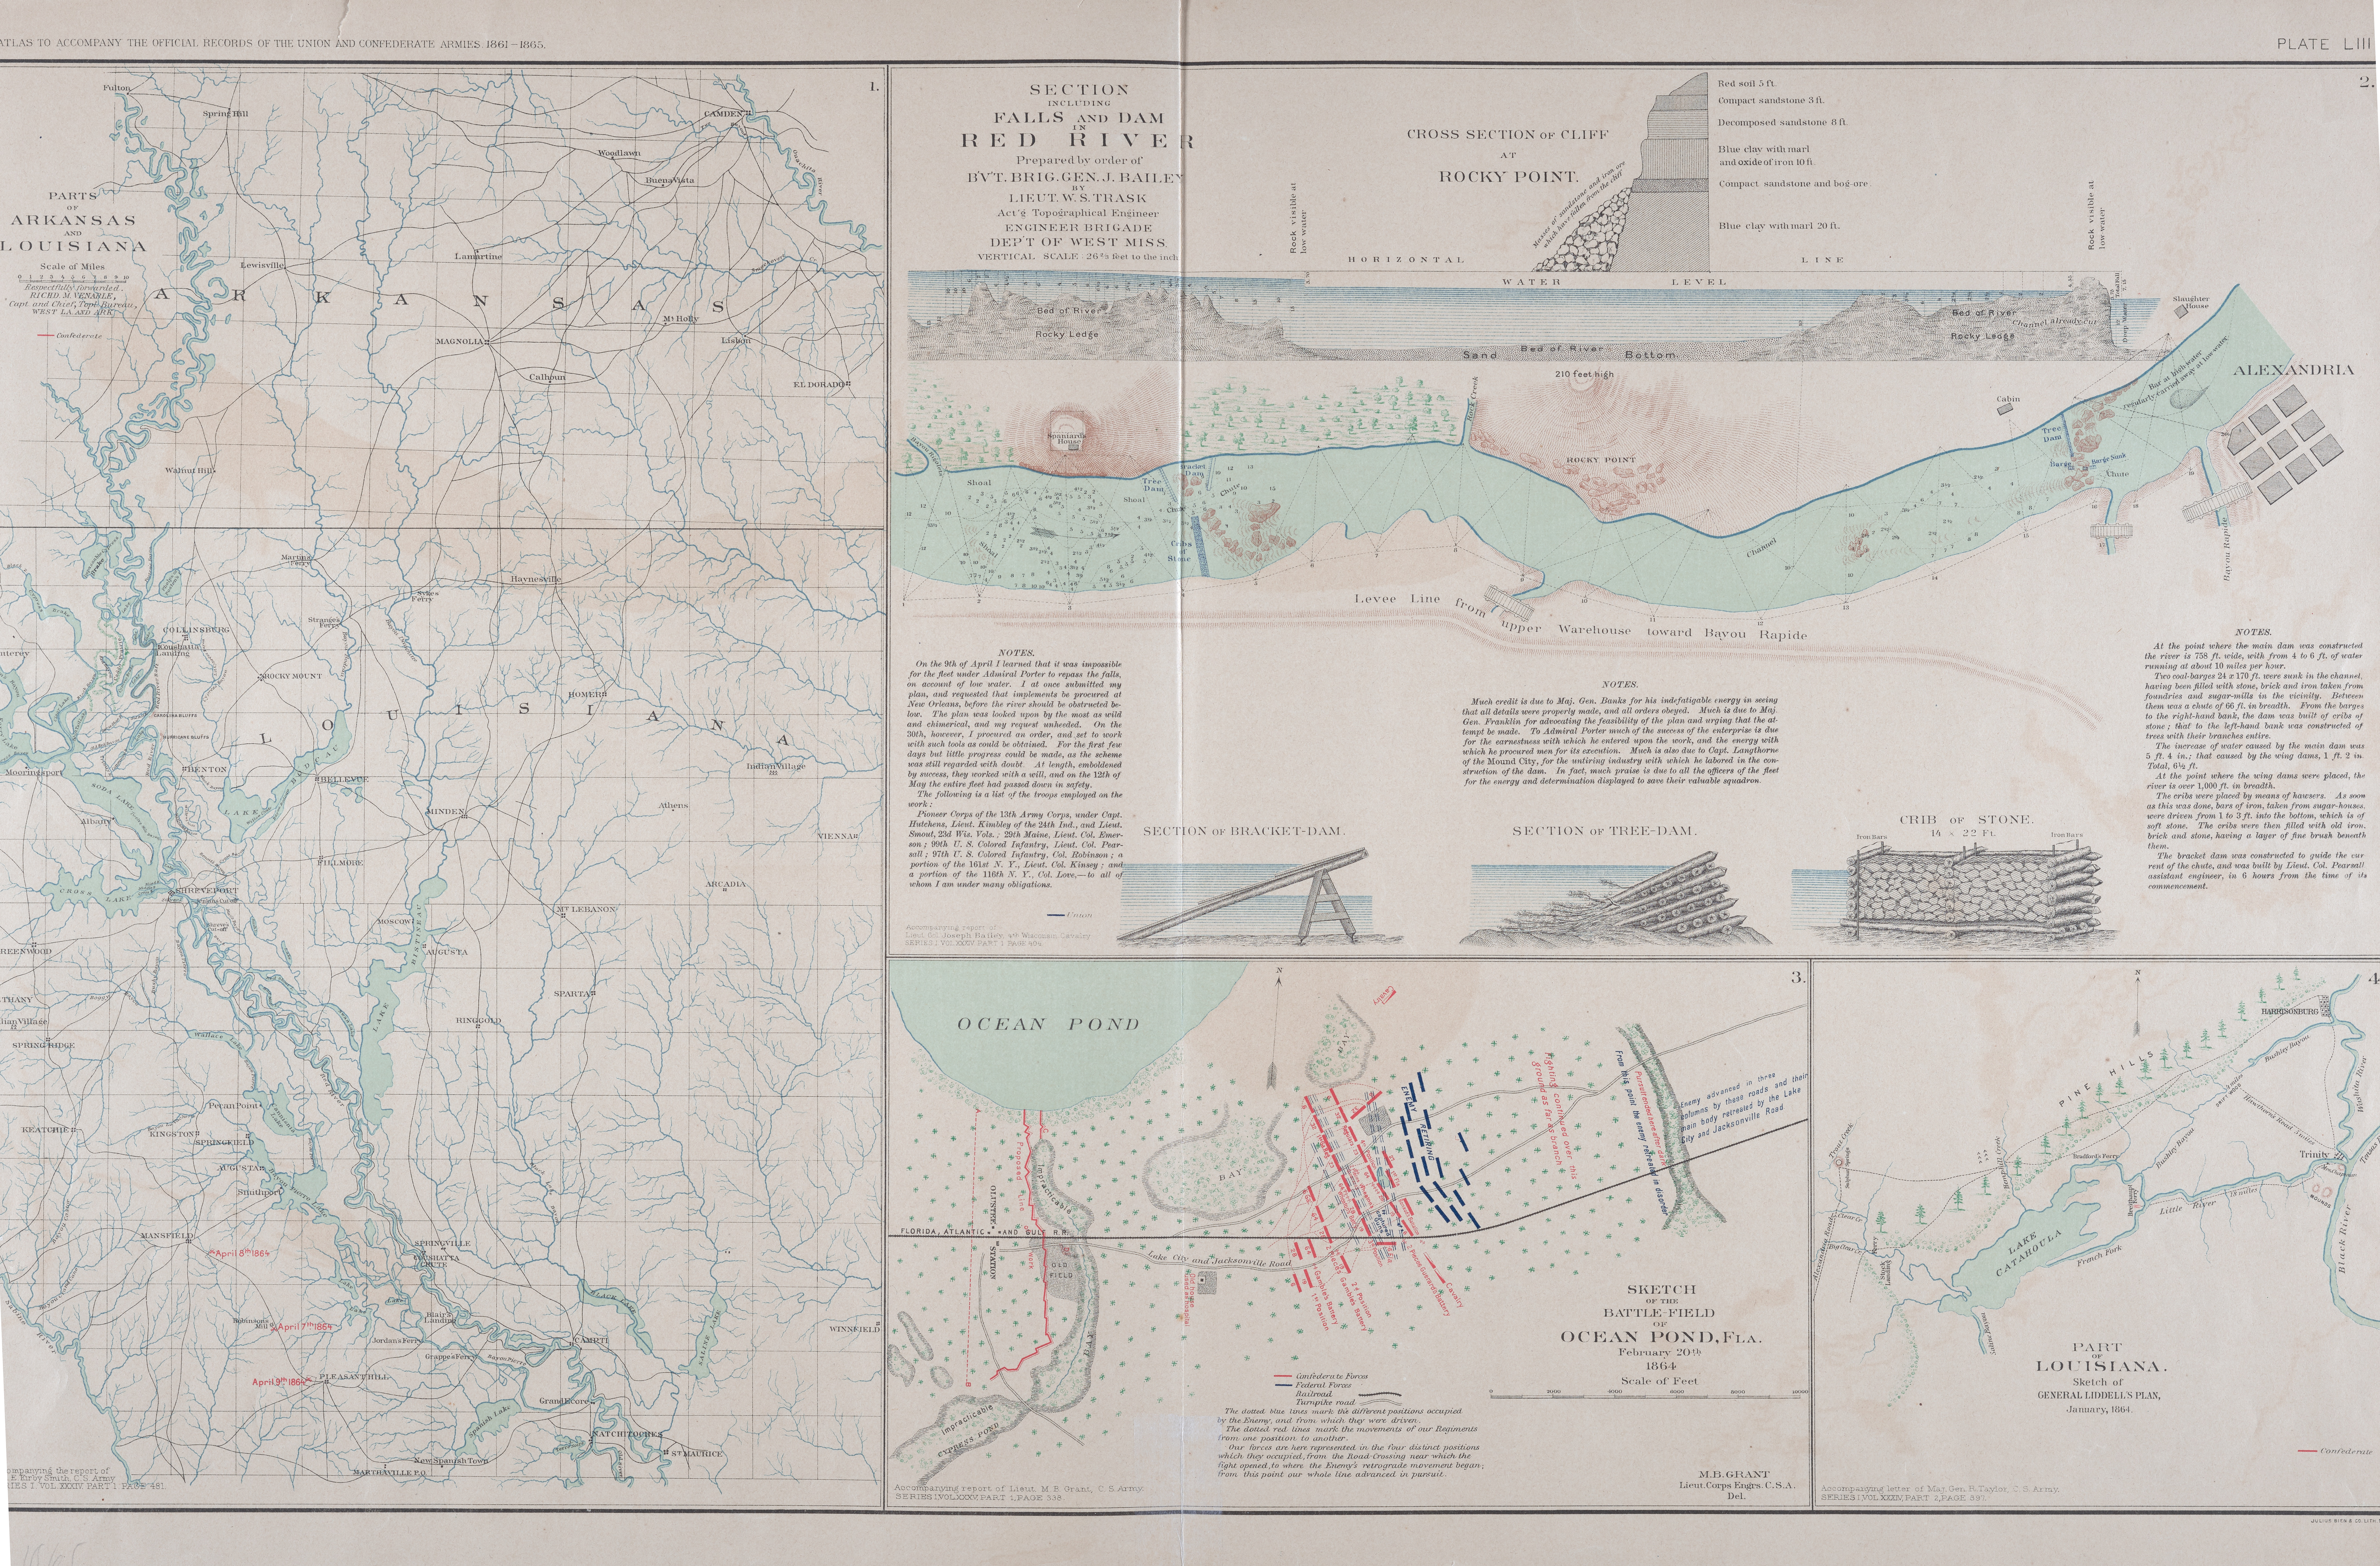 4 maps: Parts of Arkansas and Louisiana; Section including falls and dam in Red River Prepared by order of B'V'T Brig. Gen. J. Bailey by Lieut. W. Strask Act'g Topographical Engineer Engineer Brigade Dep't of West Miss.; Sketch of the Battle-Field of Ocea